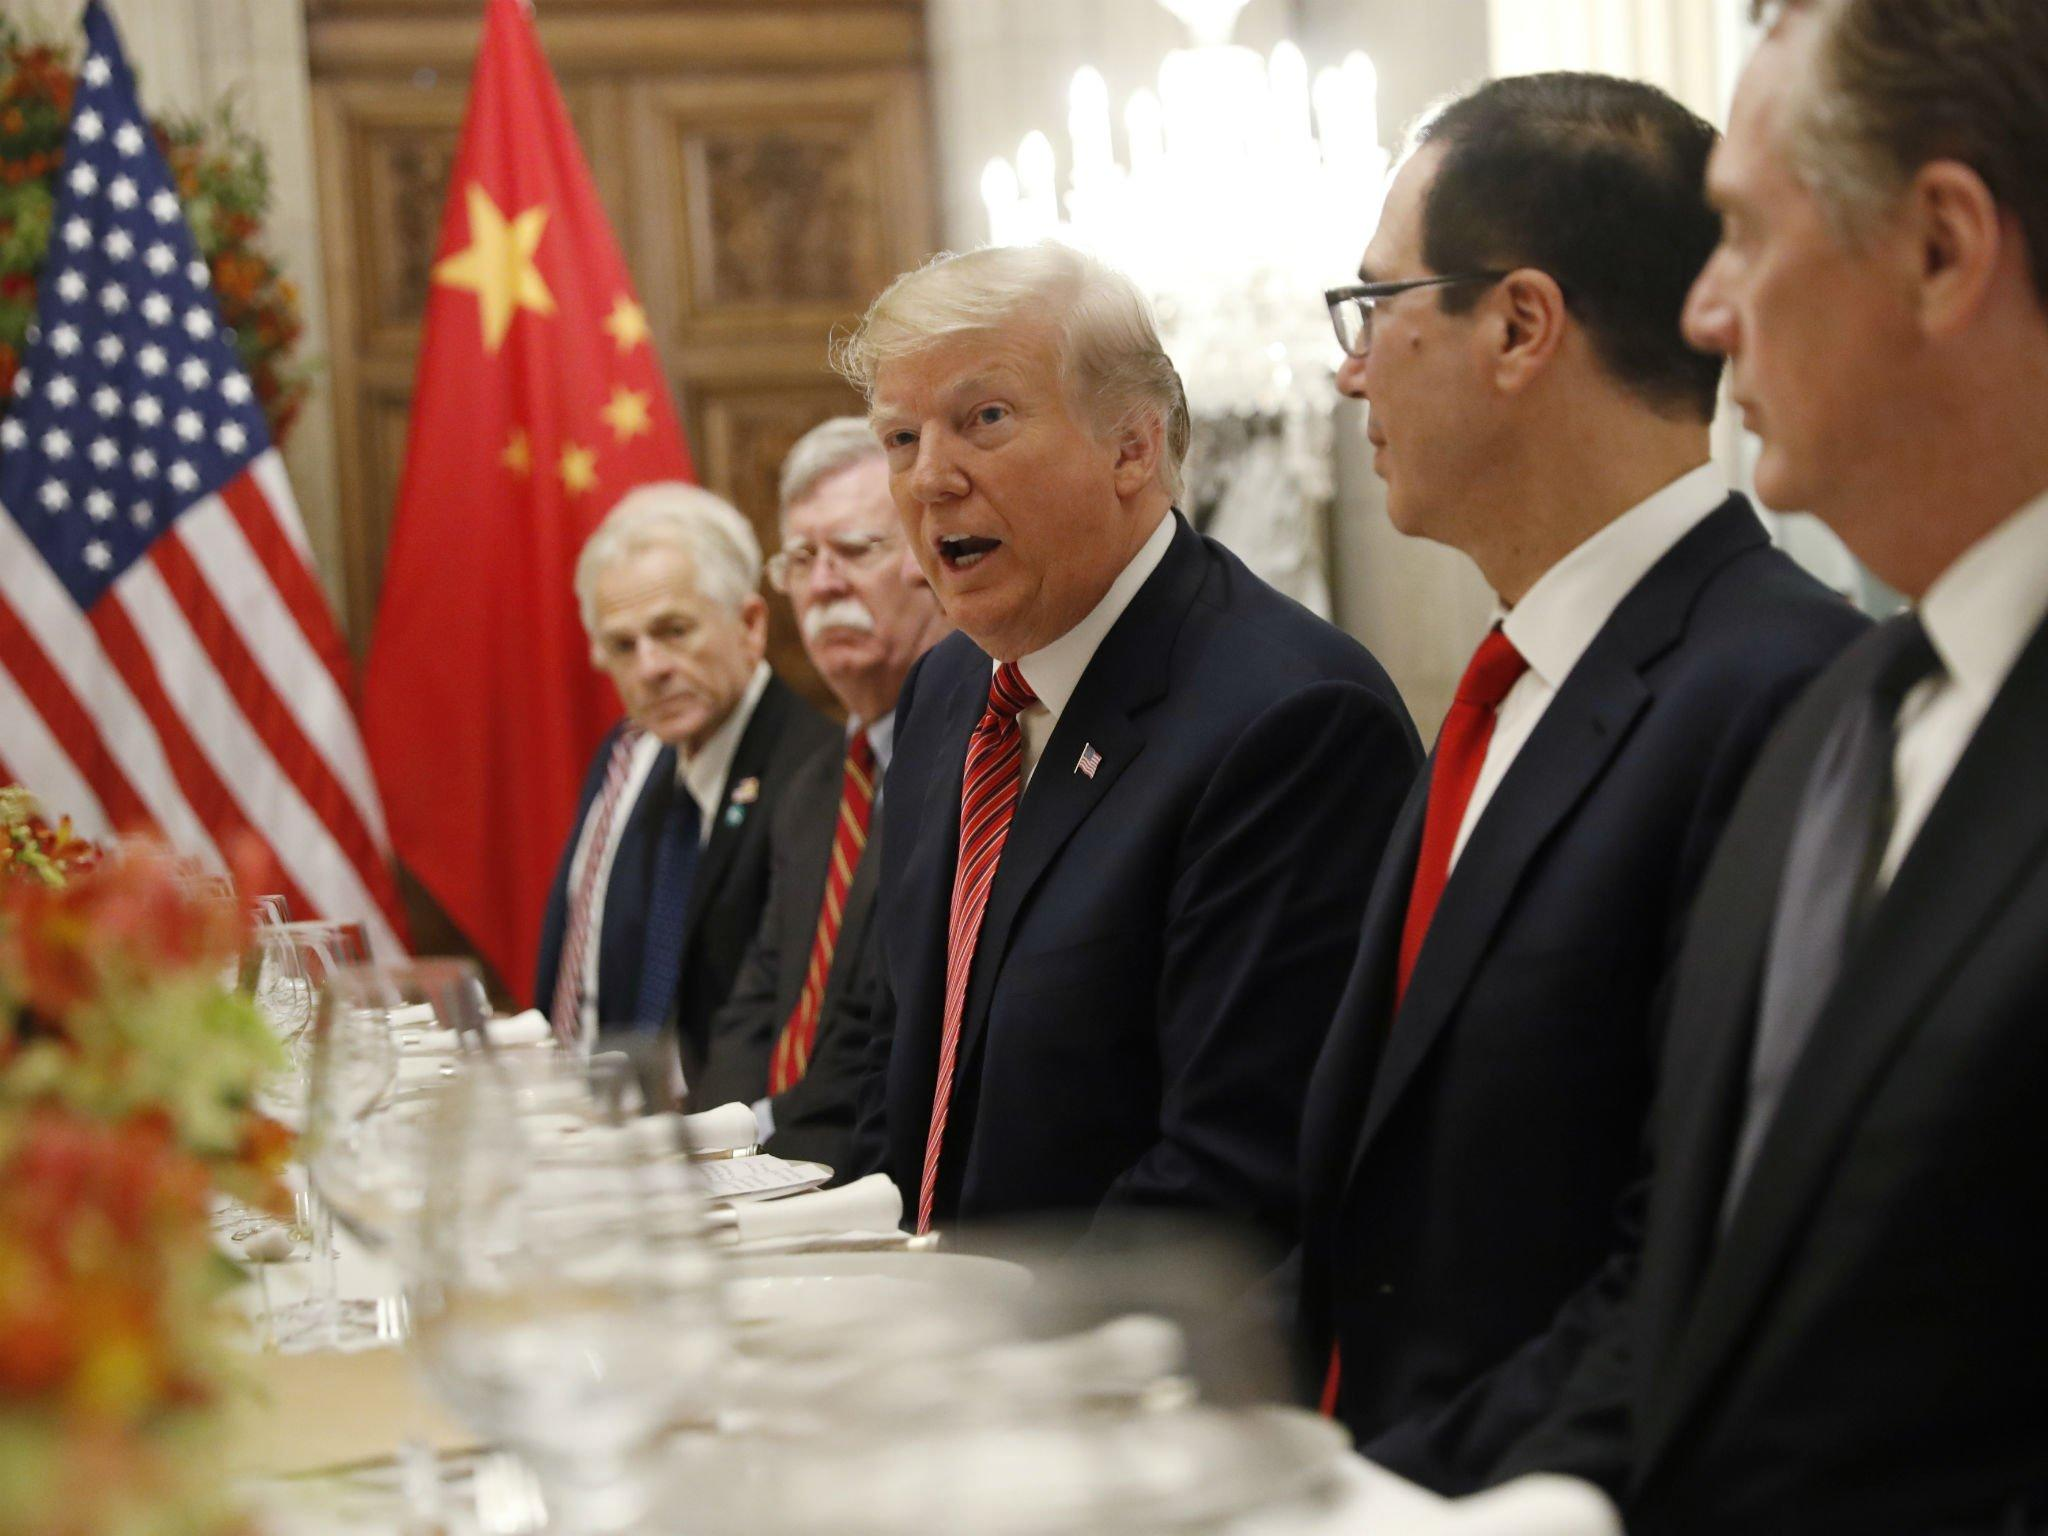 G20 summit: World leaders reluctantly bow to Trump on trade amid showdown between US and China over tariffs